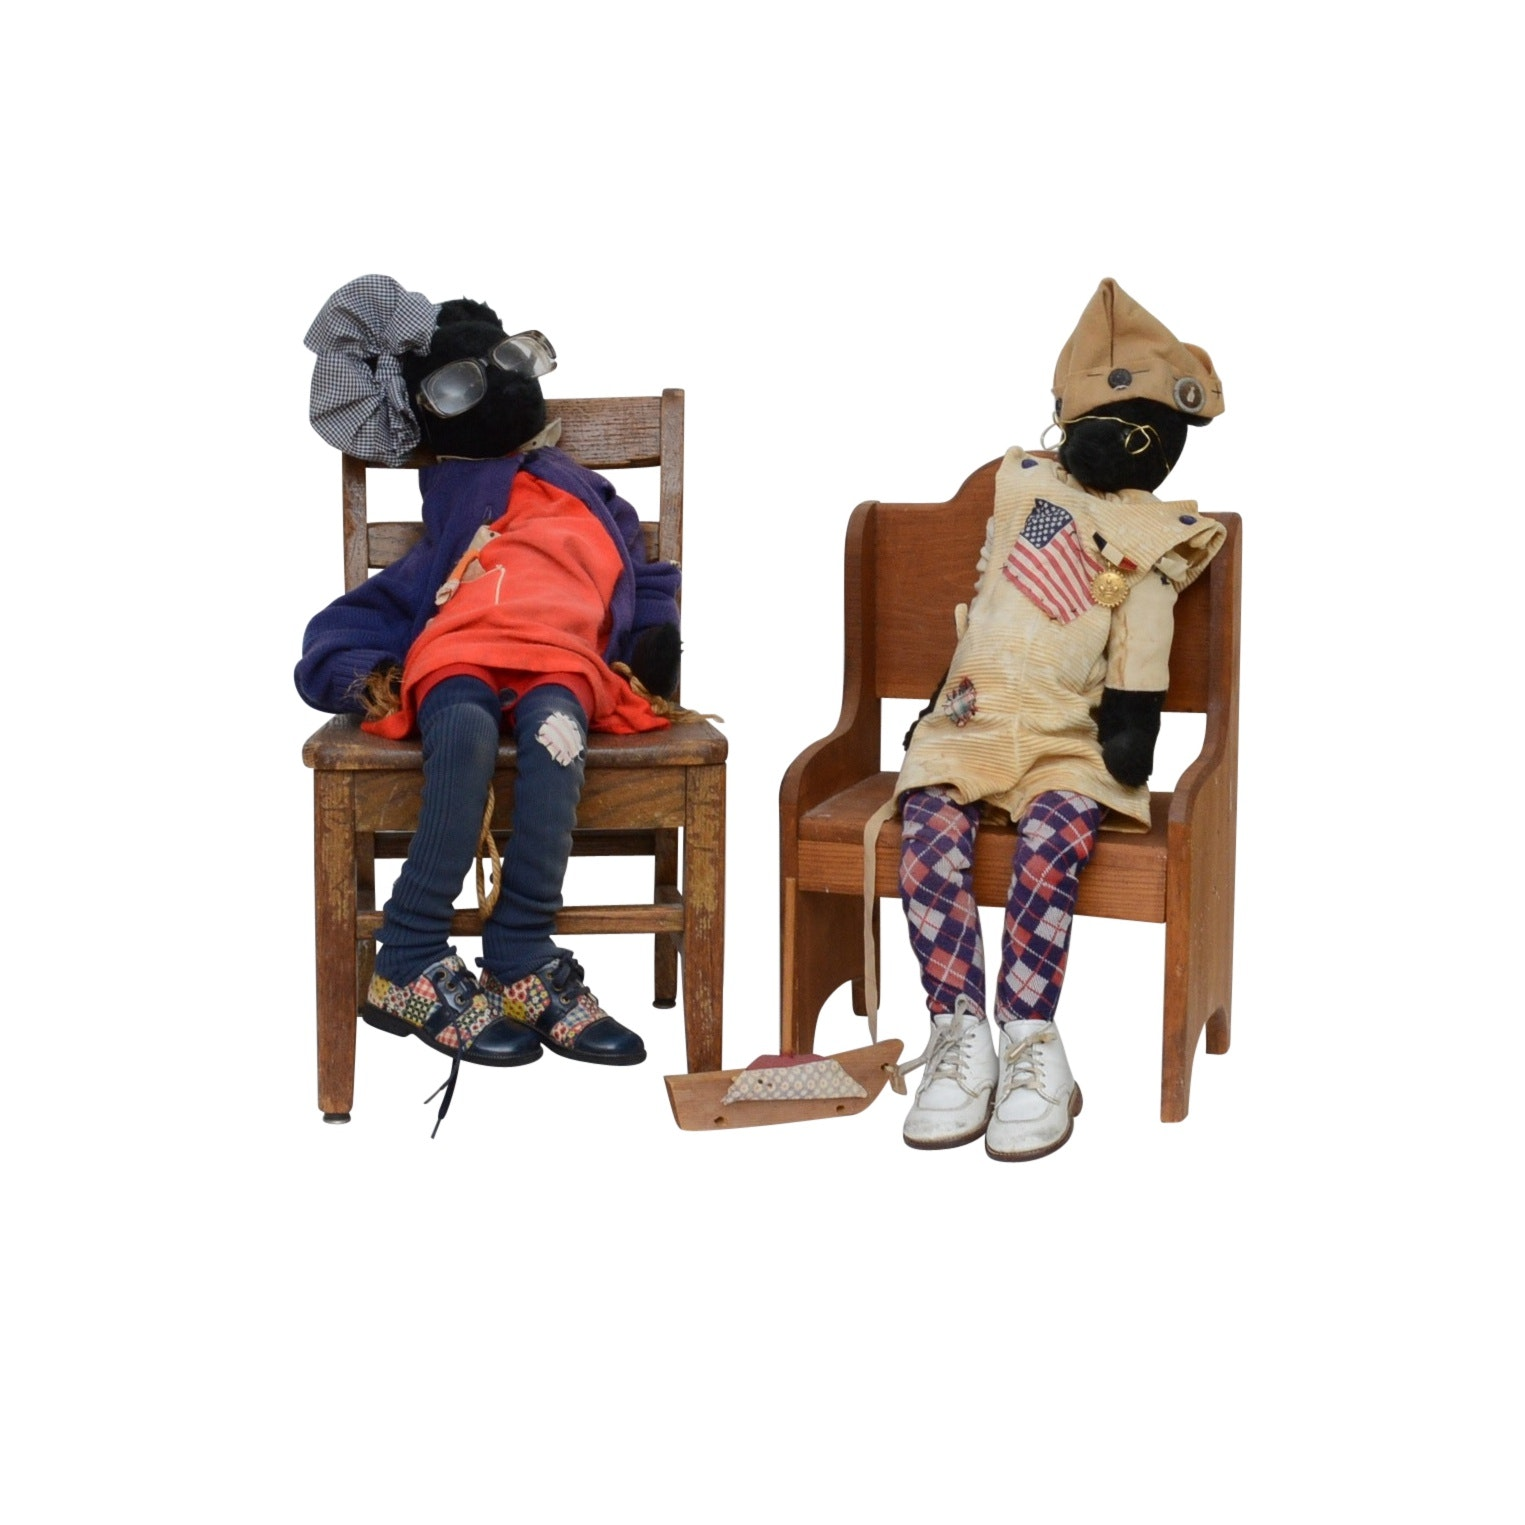 Hand Crafted Bears and Wooden Chairs